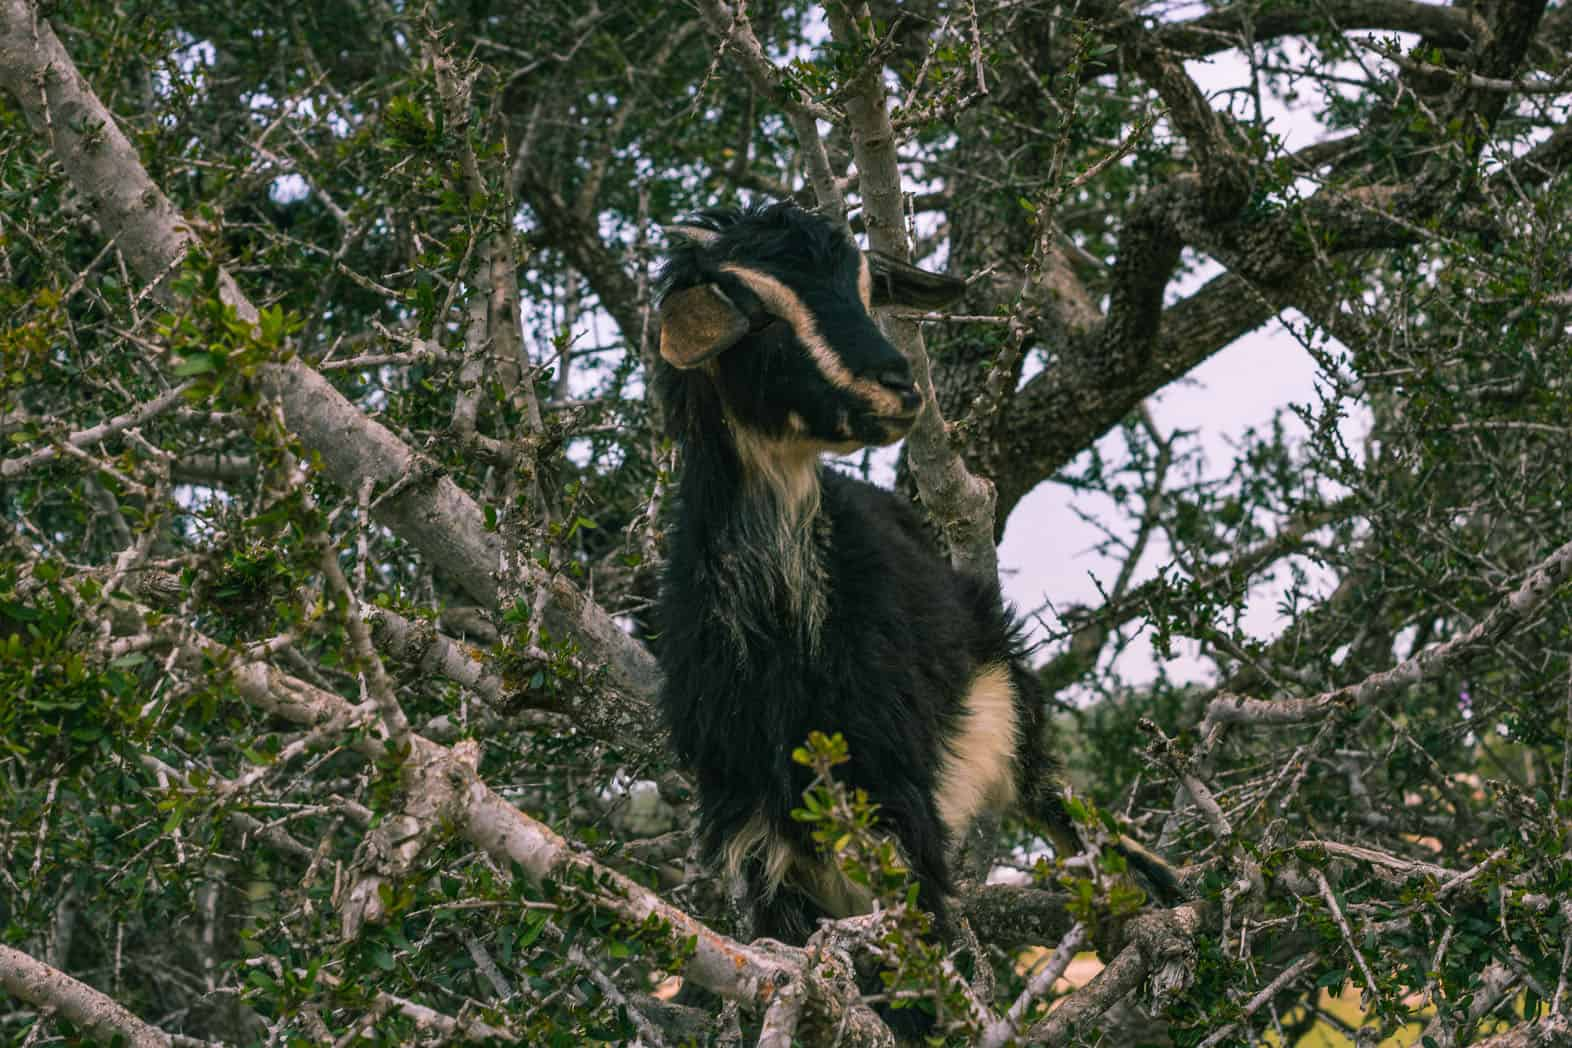 Finding Goats in Trees in Morocco: The Ethical Way!  Finding Goats i...